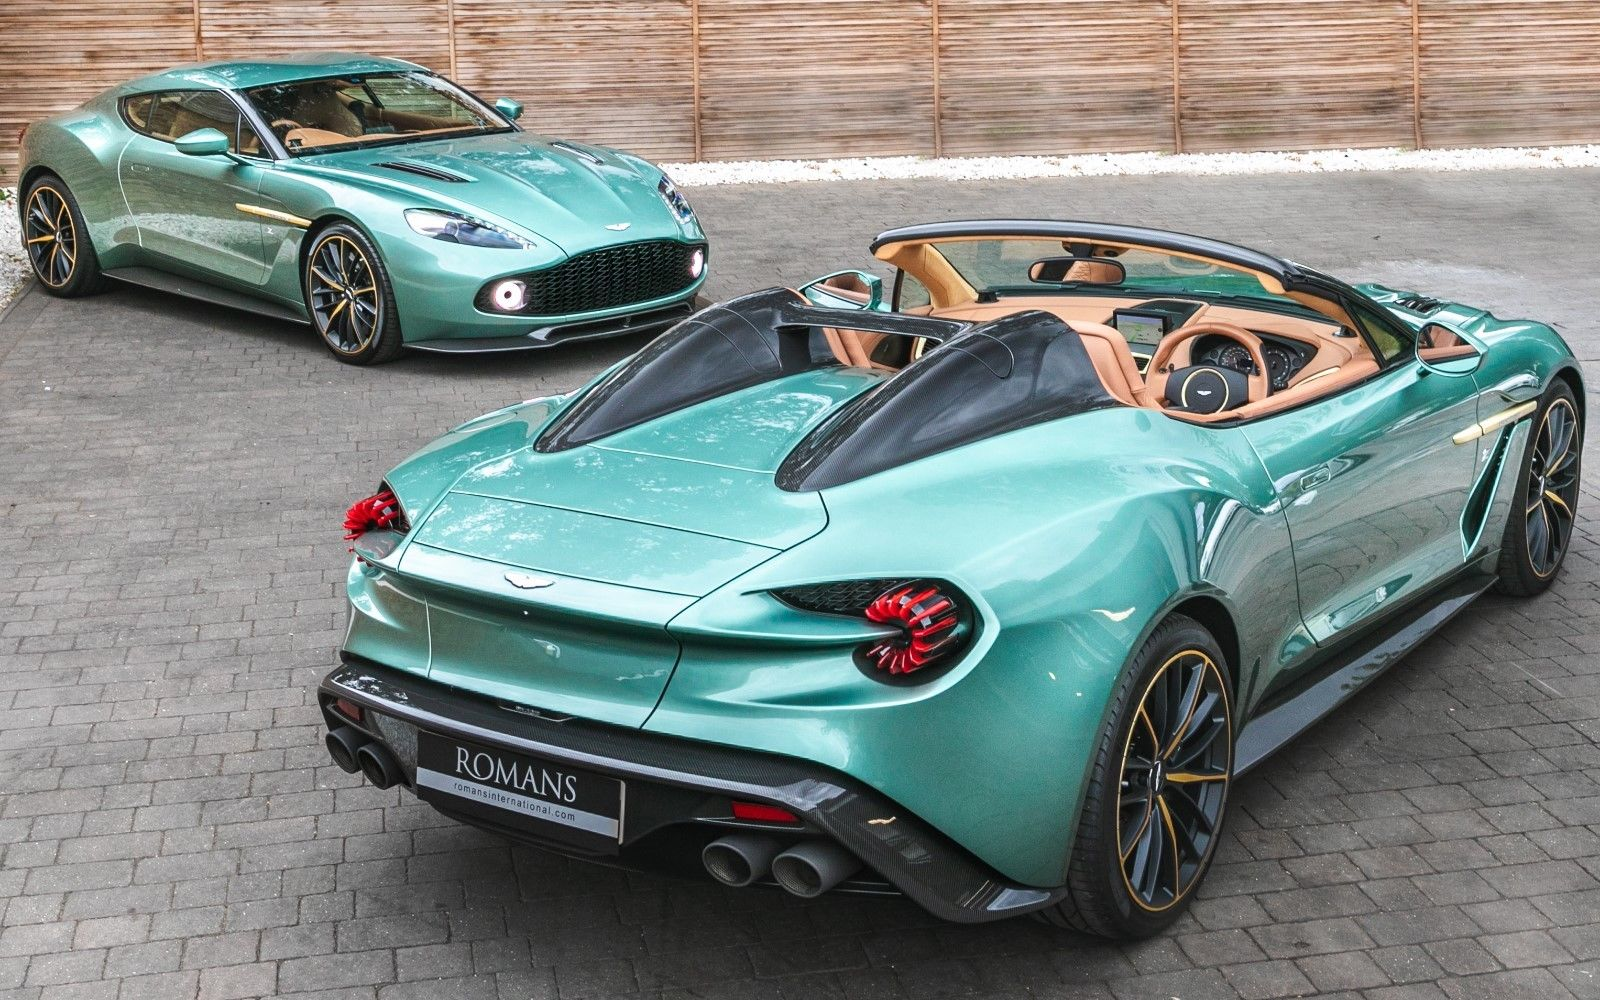 Aston Martin Vanquish Zagato Coupe Luxury Pulse Cars United Kingdom For Sale On Luxurypulse